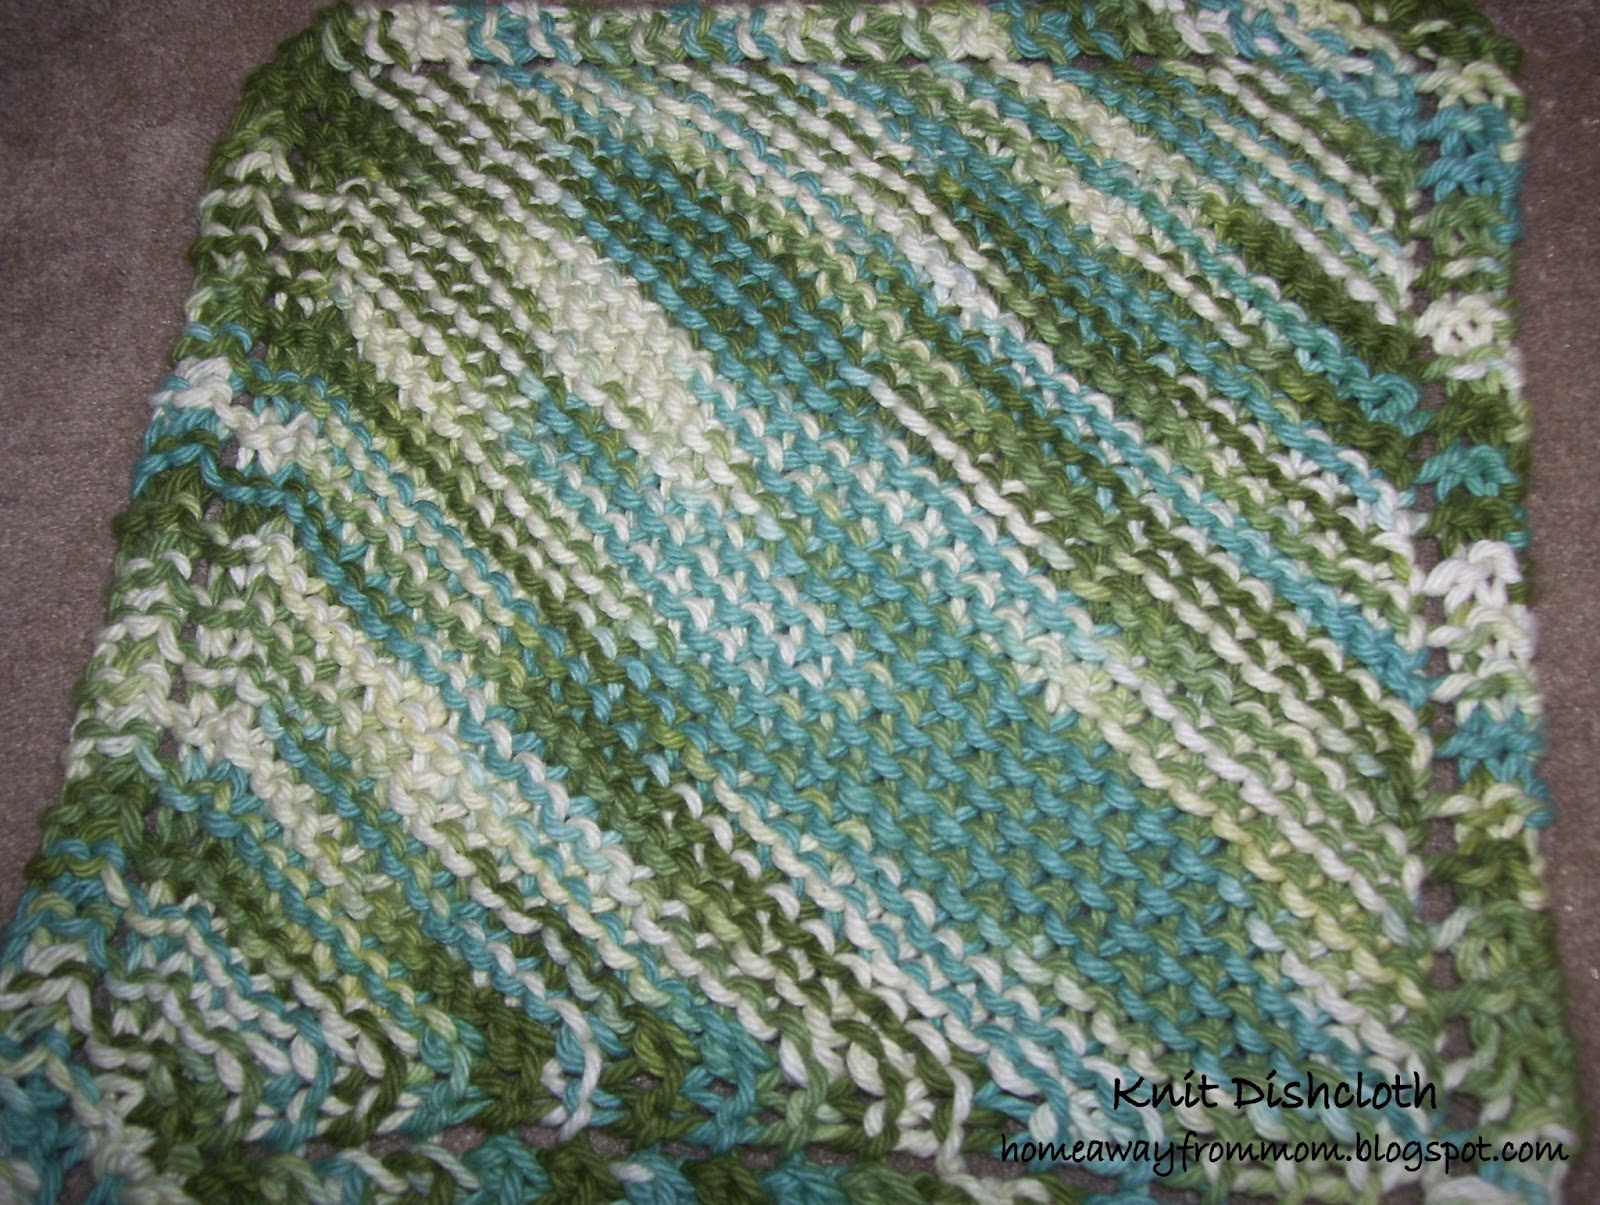 Knitting Yrn K2tog : Home away from mom knitting project a dishcloth